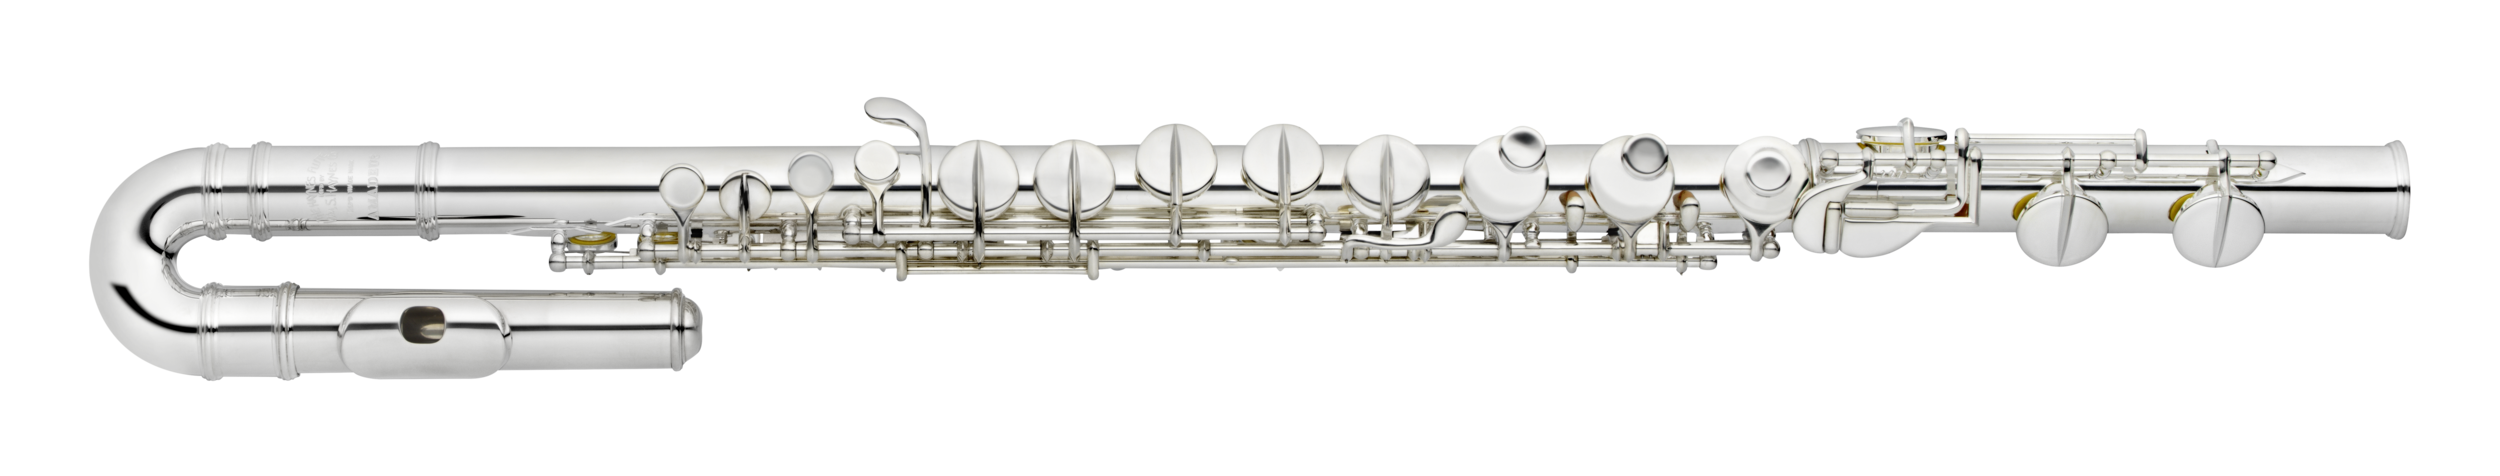 Haynes_Amadeus_Alto_Curved_Front_0918.png